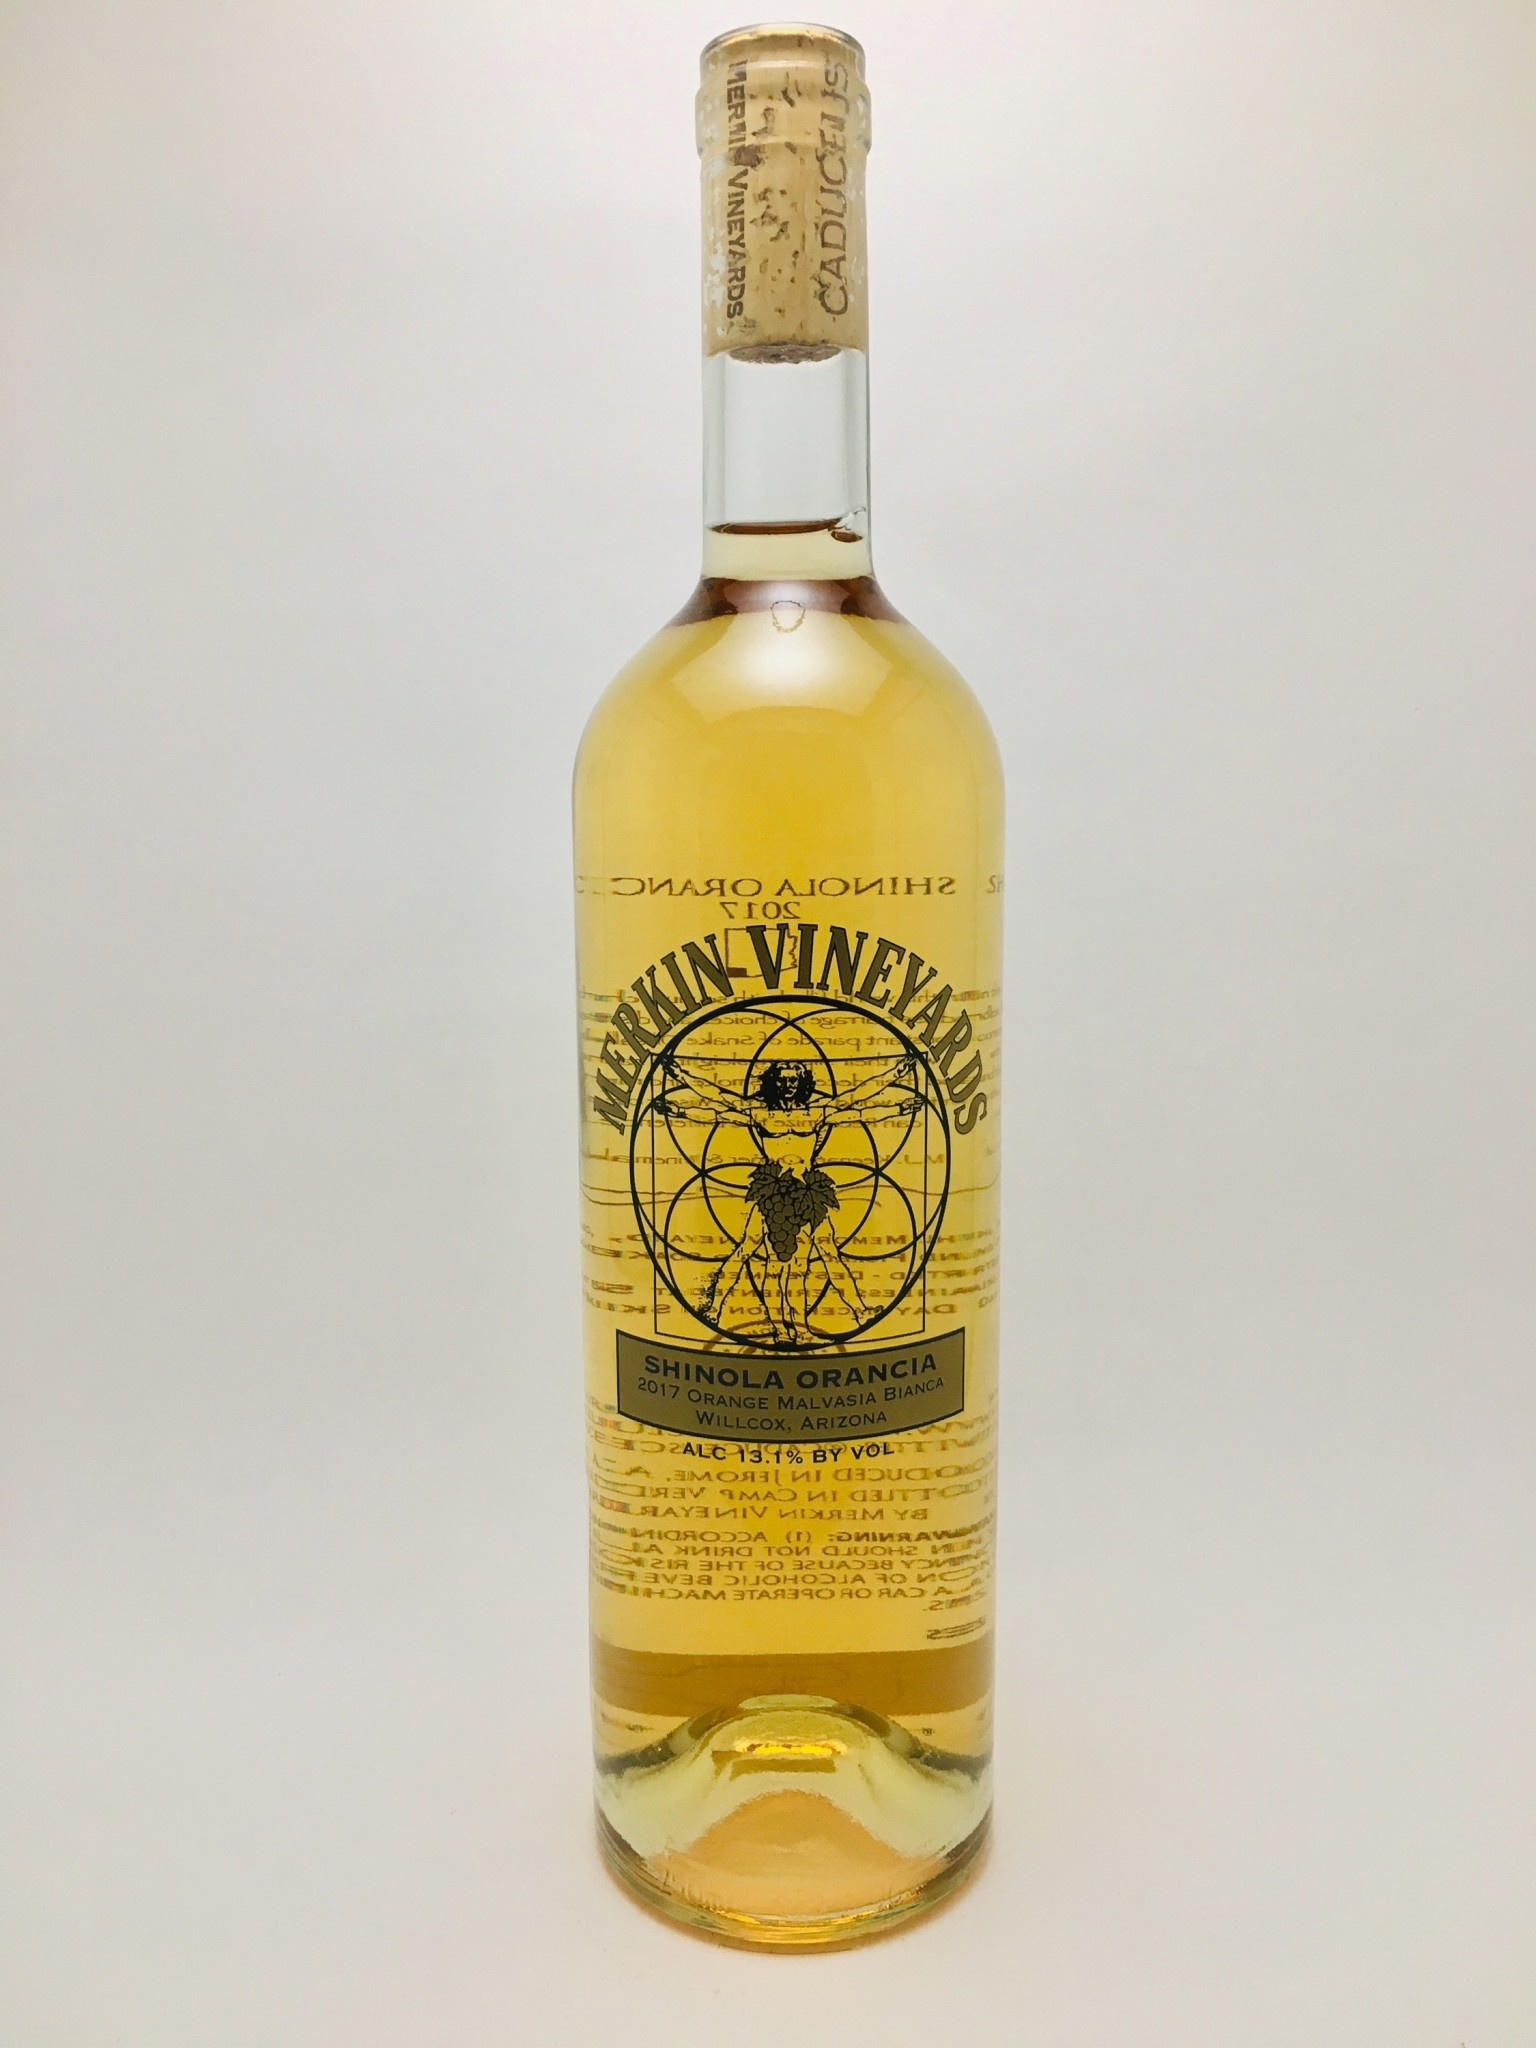 Merkin Vineyards, Malvasia Shinola Orancia 2018